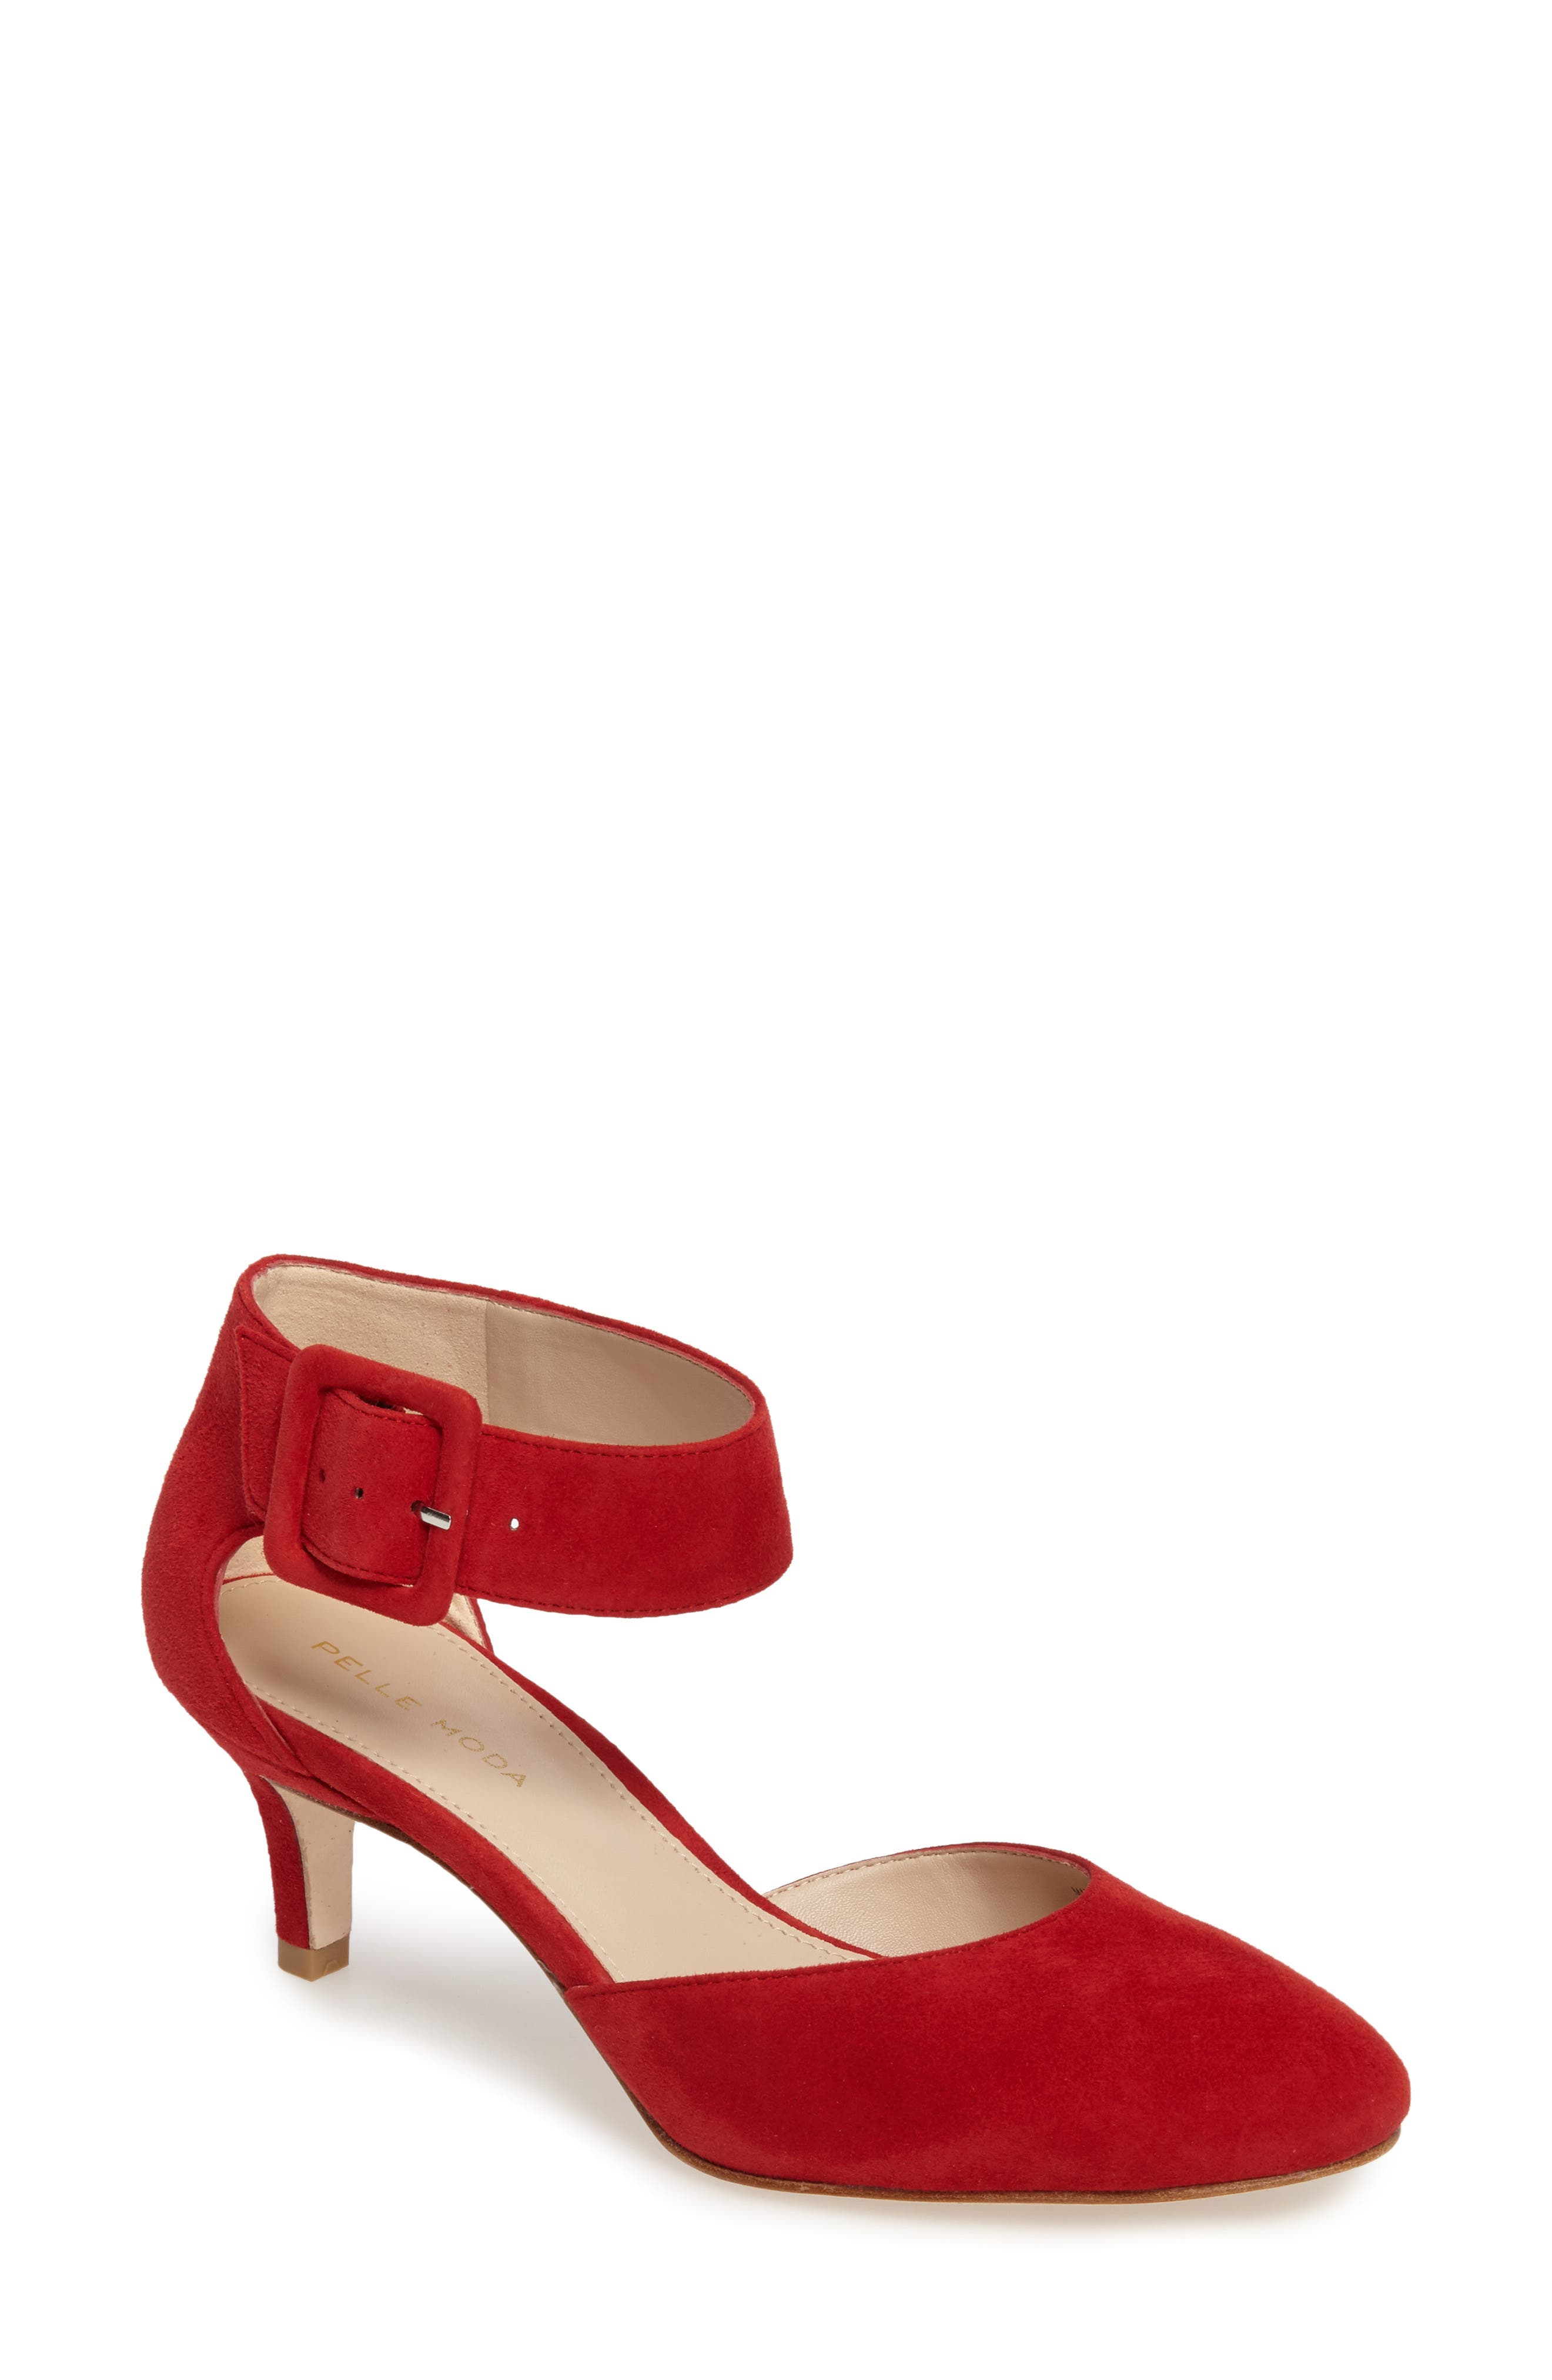 Alternate Image 1 Selected - Pelle Moda Ankle Strap Pump (Women)